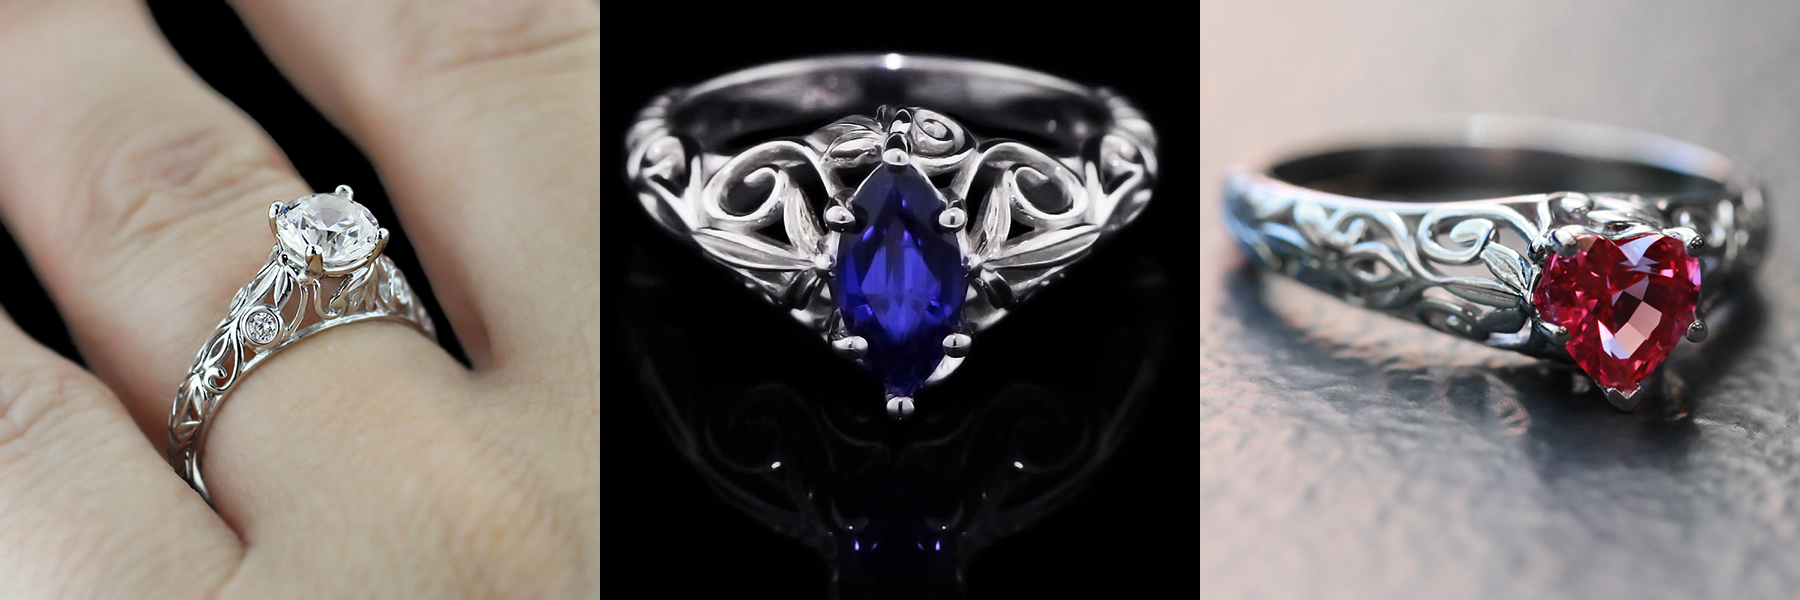 The Tory Antique Engagement Ring | Custom Design Your Own Engagement Ring | MiaDonna